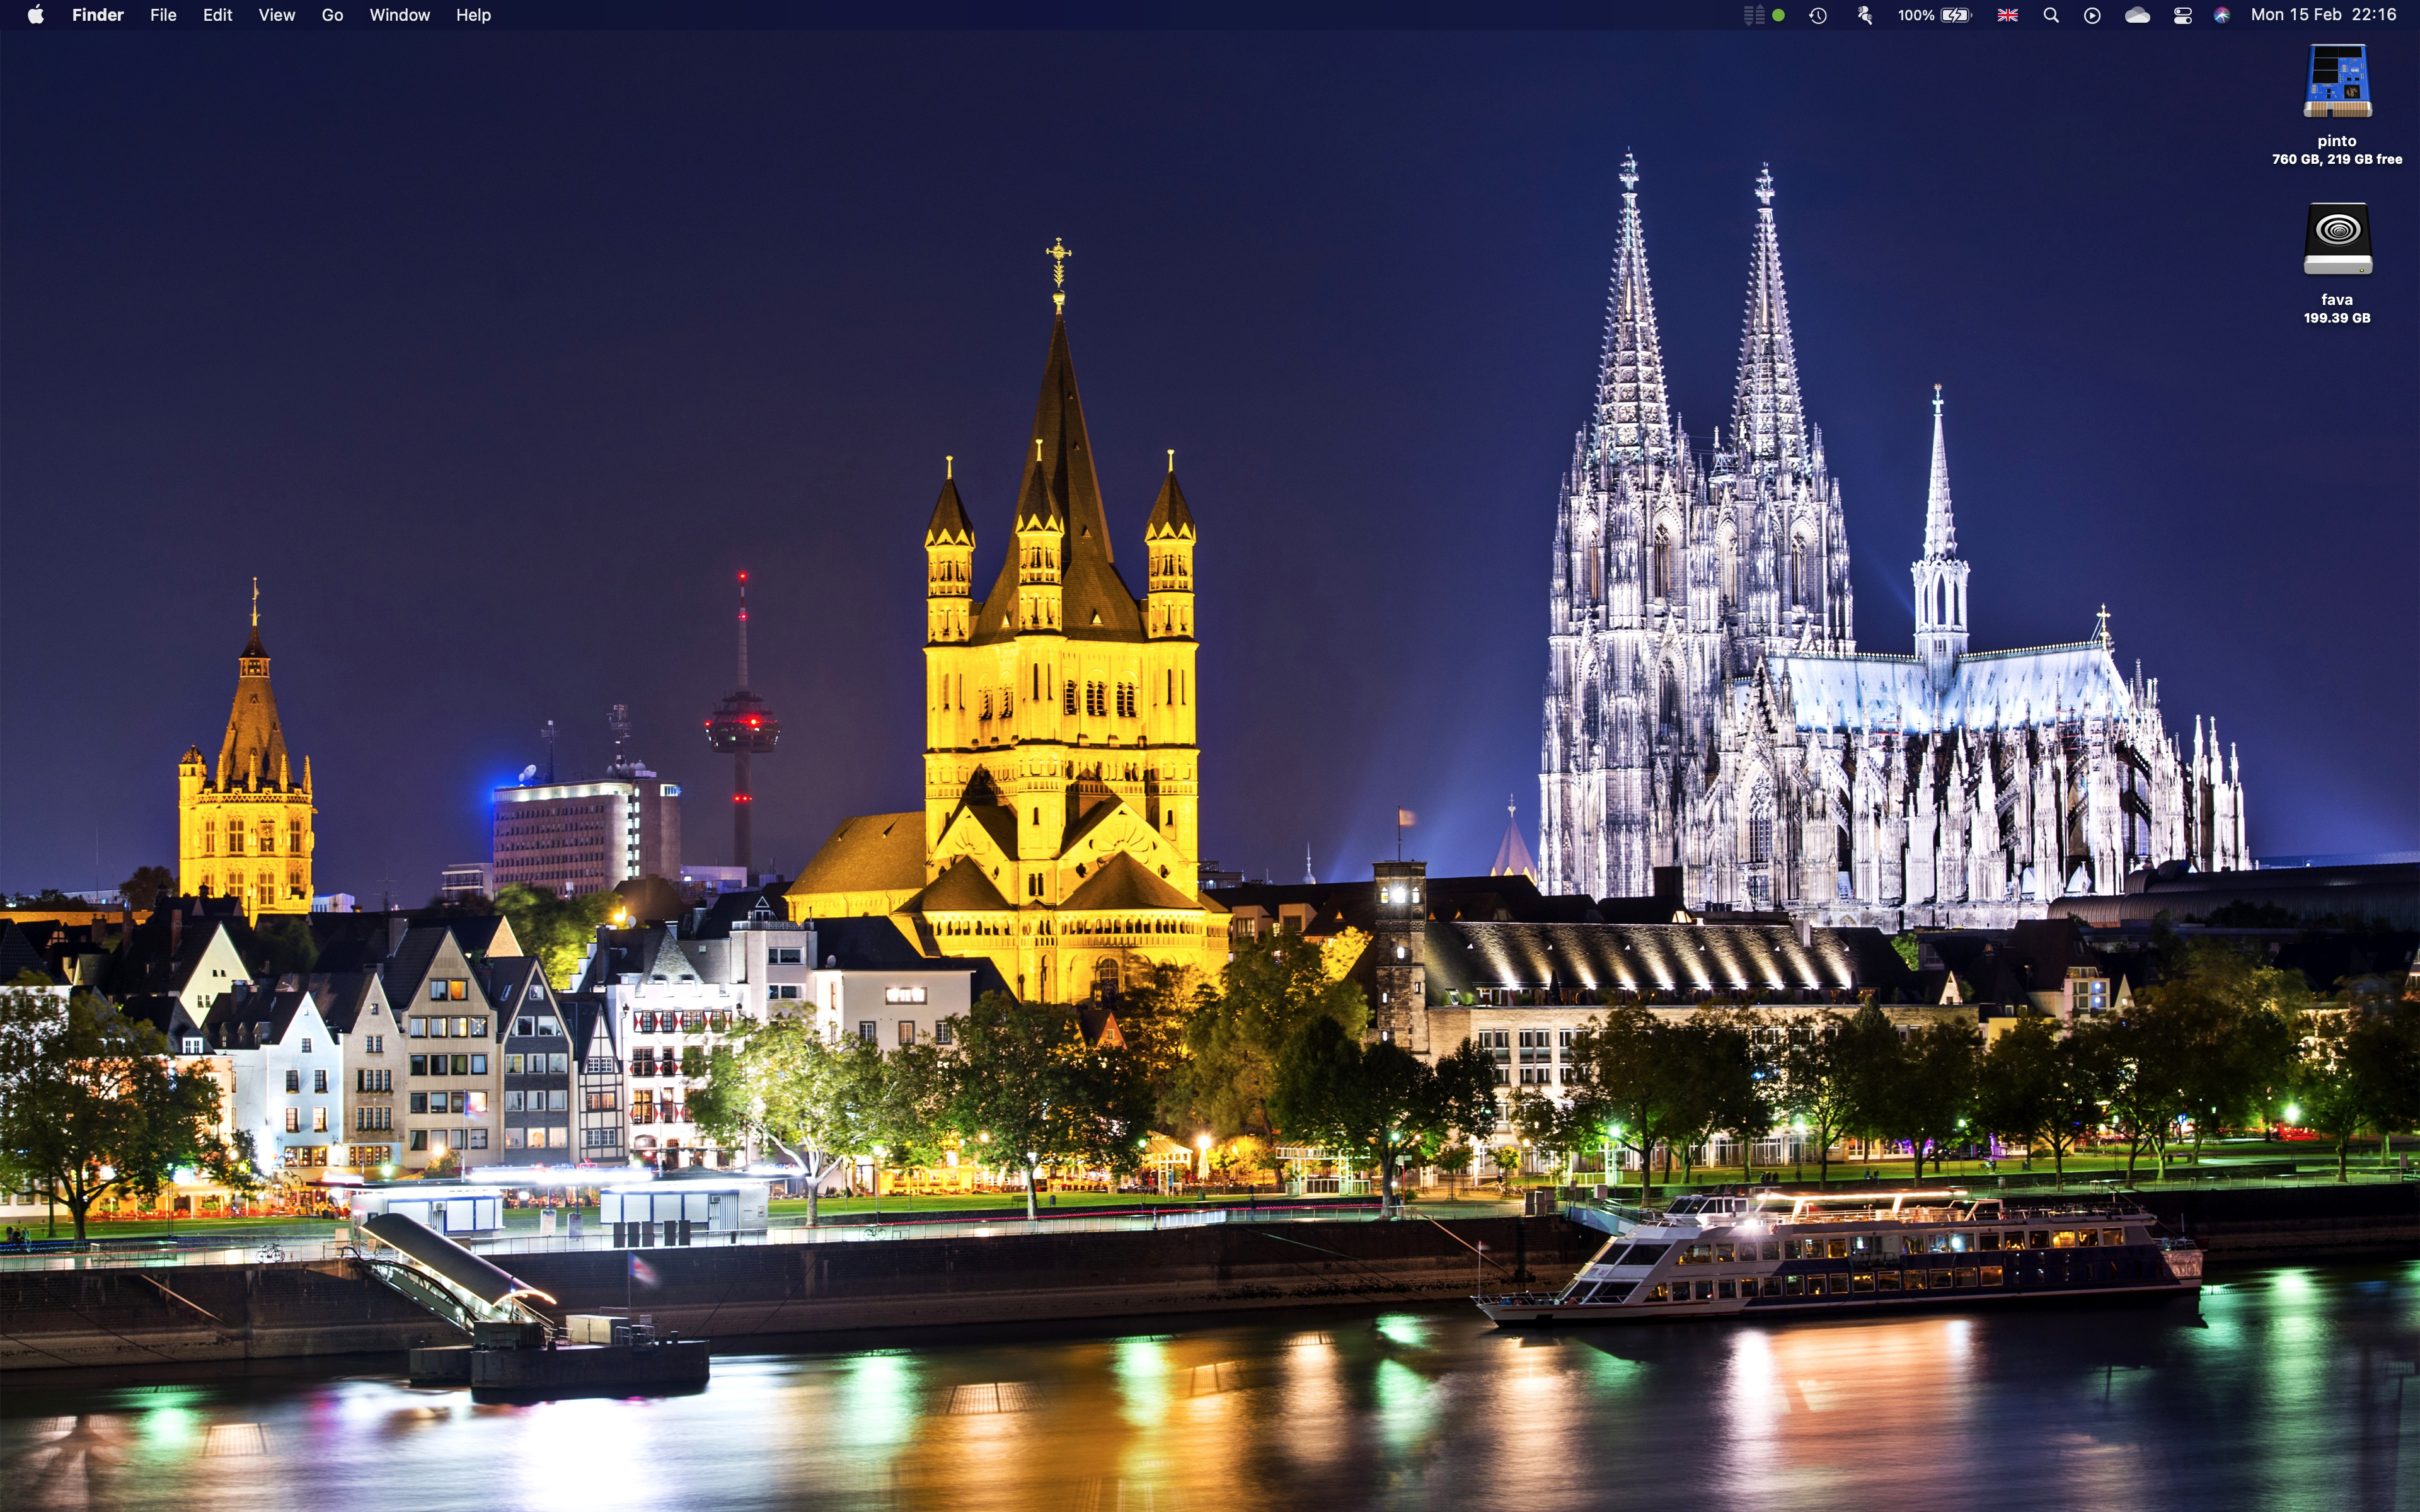 A Picture of My Desktop